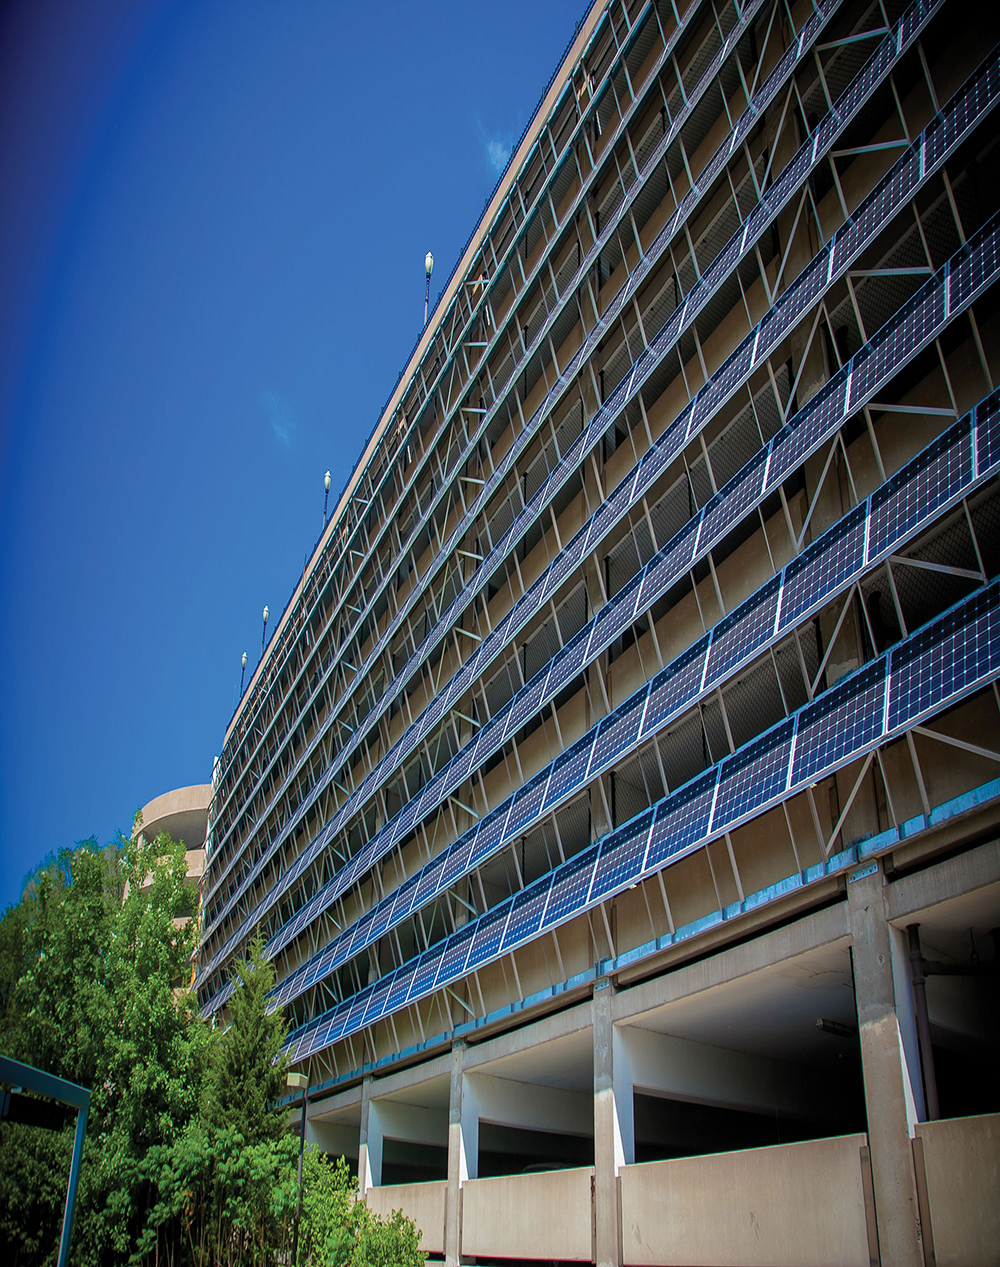 Supported by a steel frame, Hunt Electric mounted and connected 348 solar panels on the St. Paul River Centre parking ramp in Minnesota.